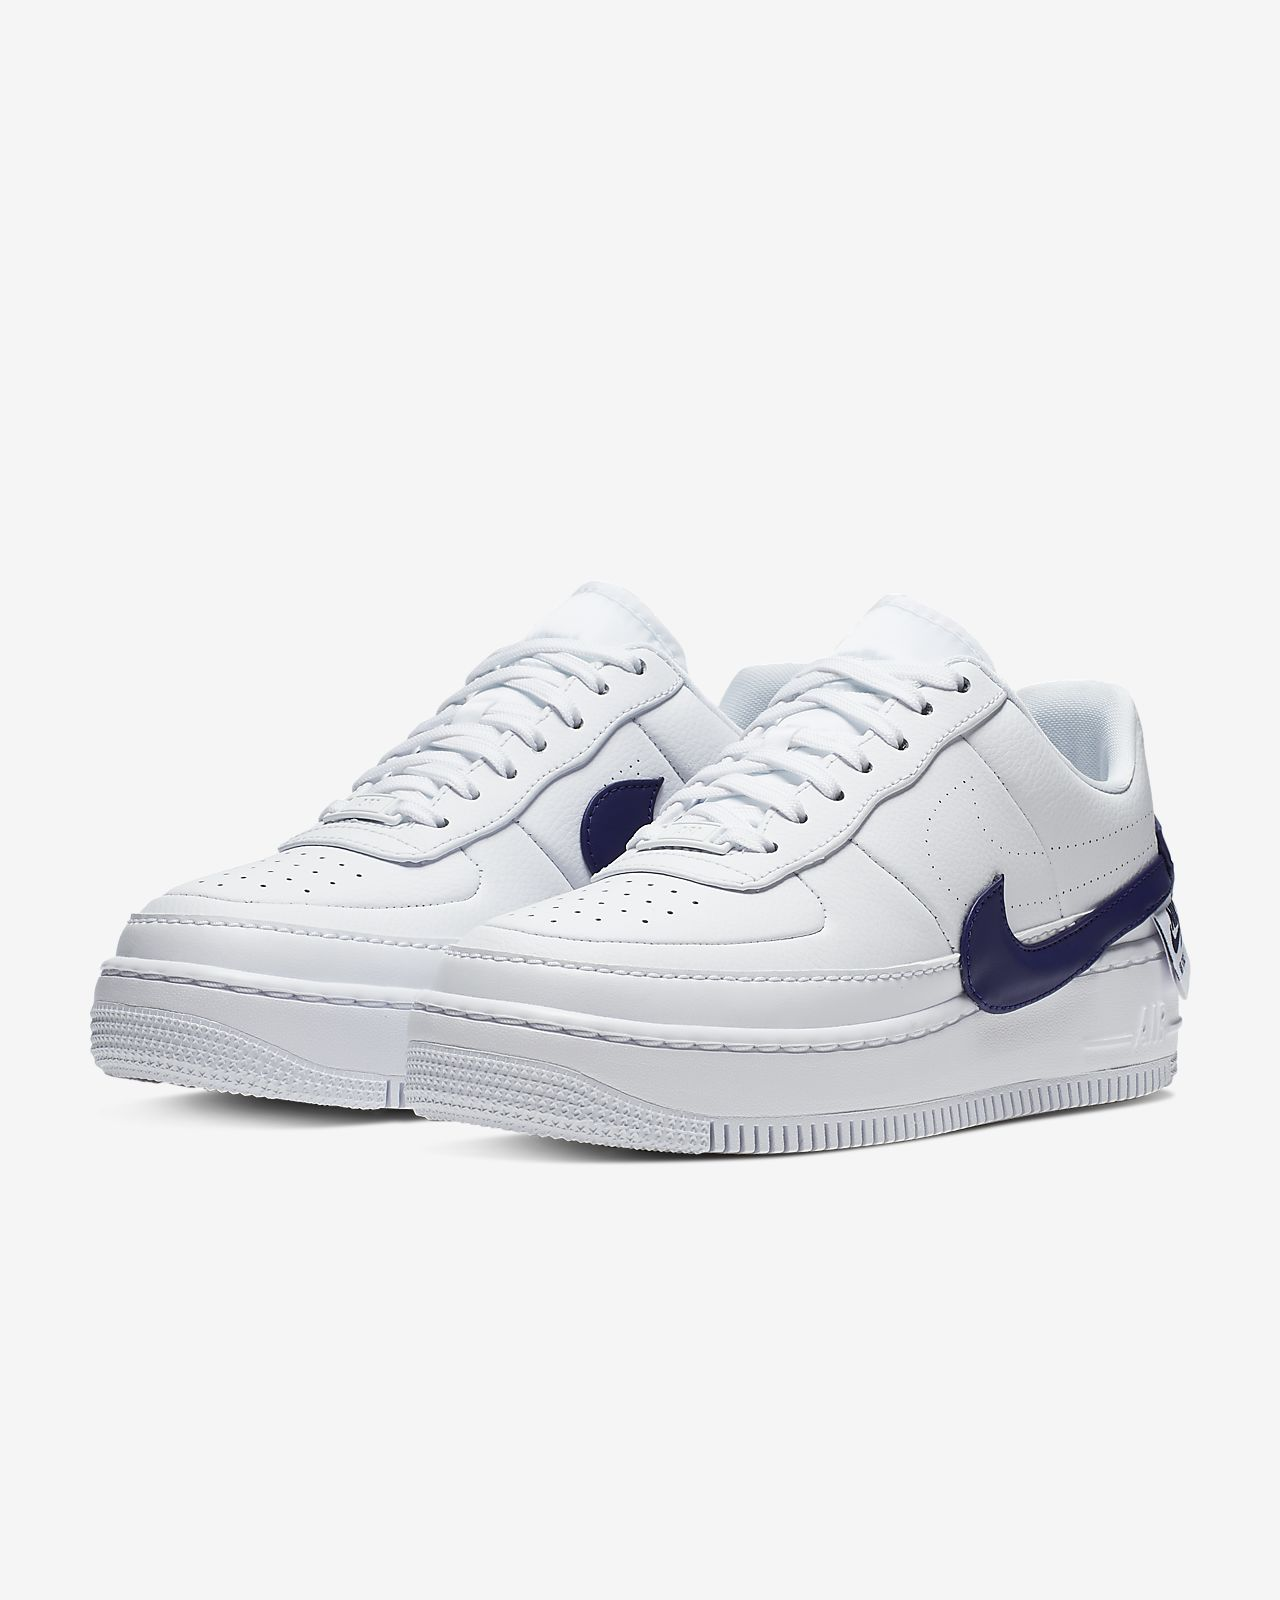 new arrival 15027 6a3fb ... Nike Air Force 1 Jester XX Shoe